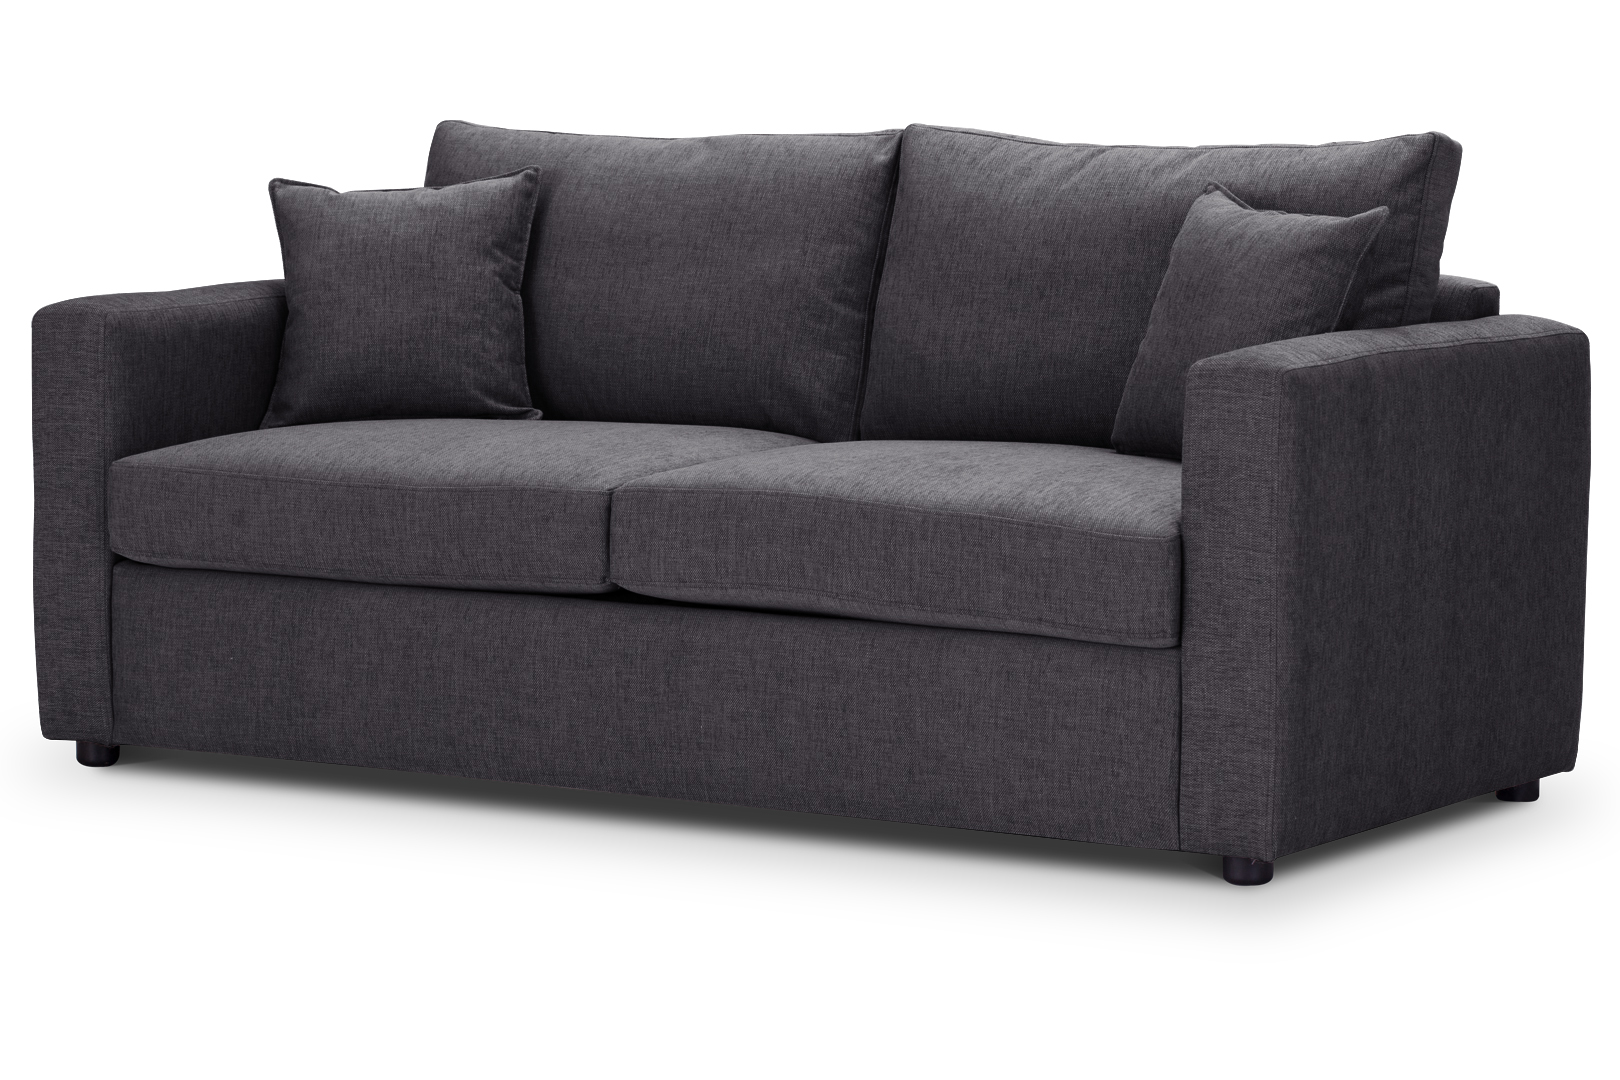 oxford medium sofa bed charcoal highly sprung sofas london newhaven. Black Bedroom Furniture Sets. Home Design Ideas